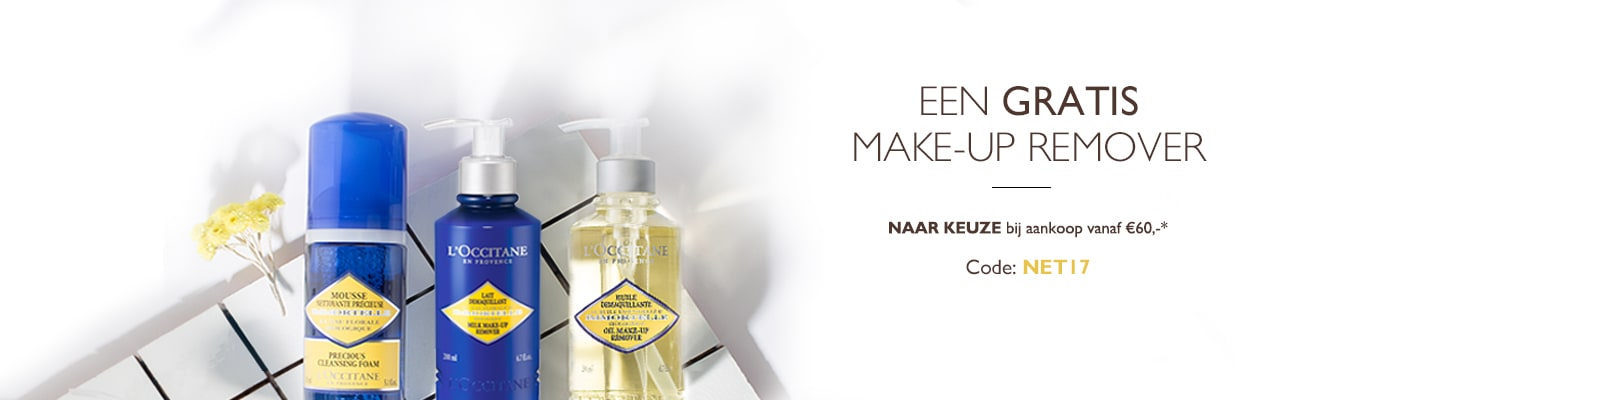 Make Up Remover aanbieding